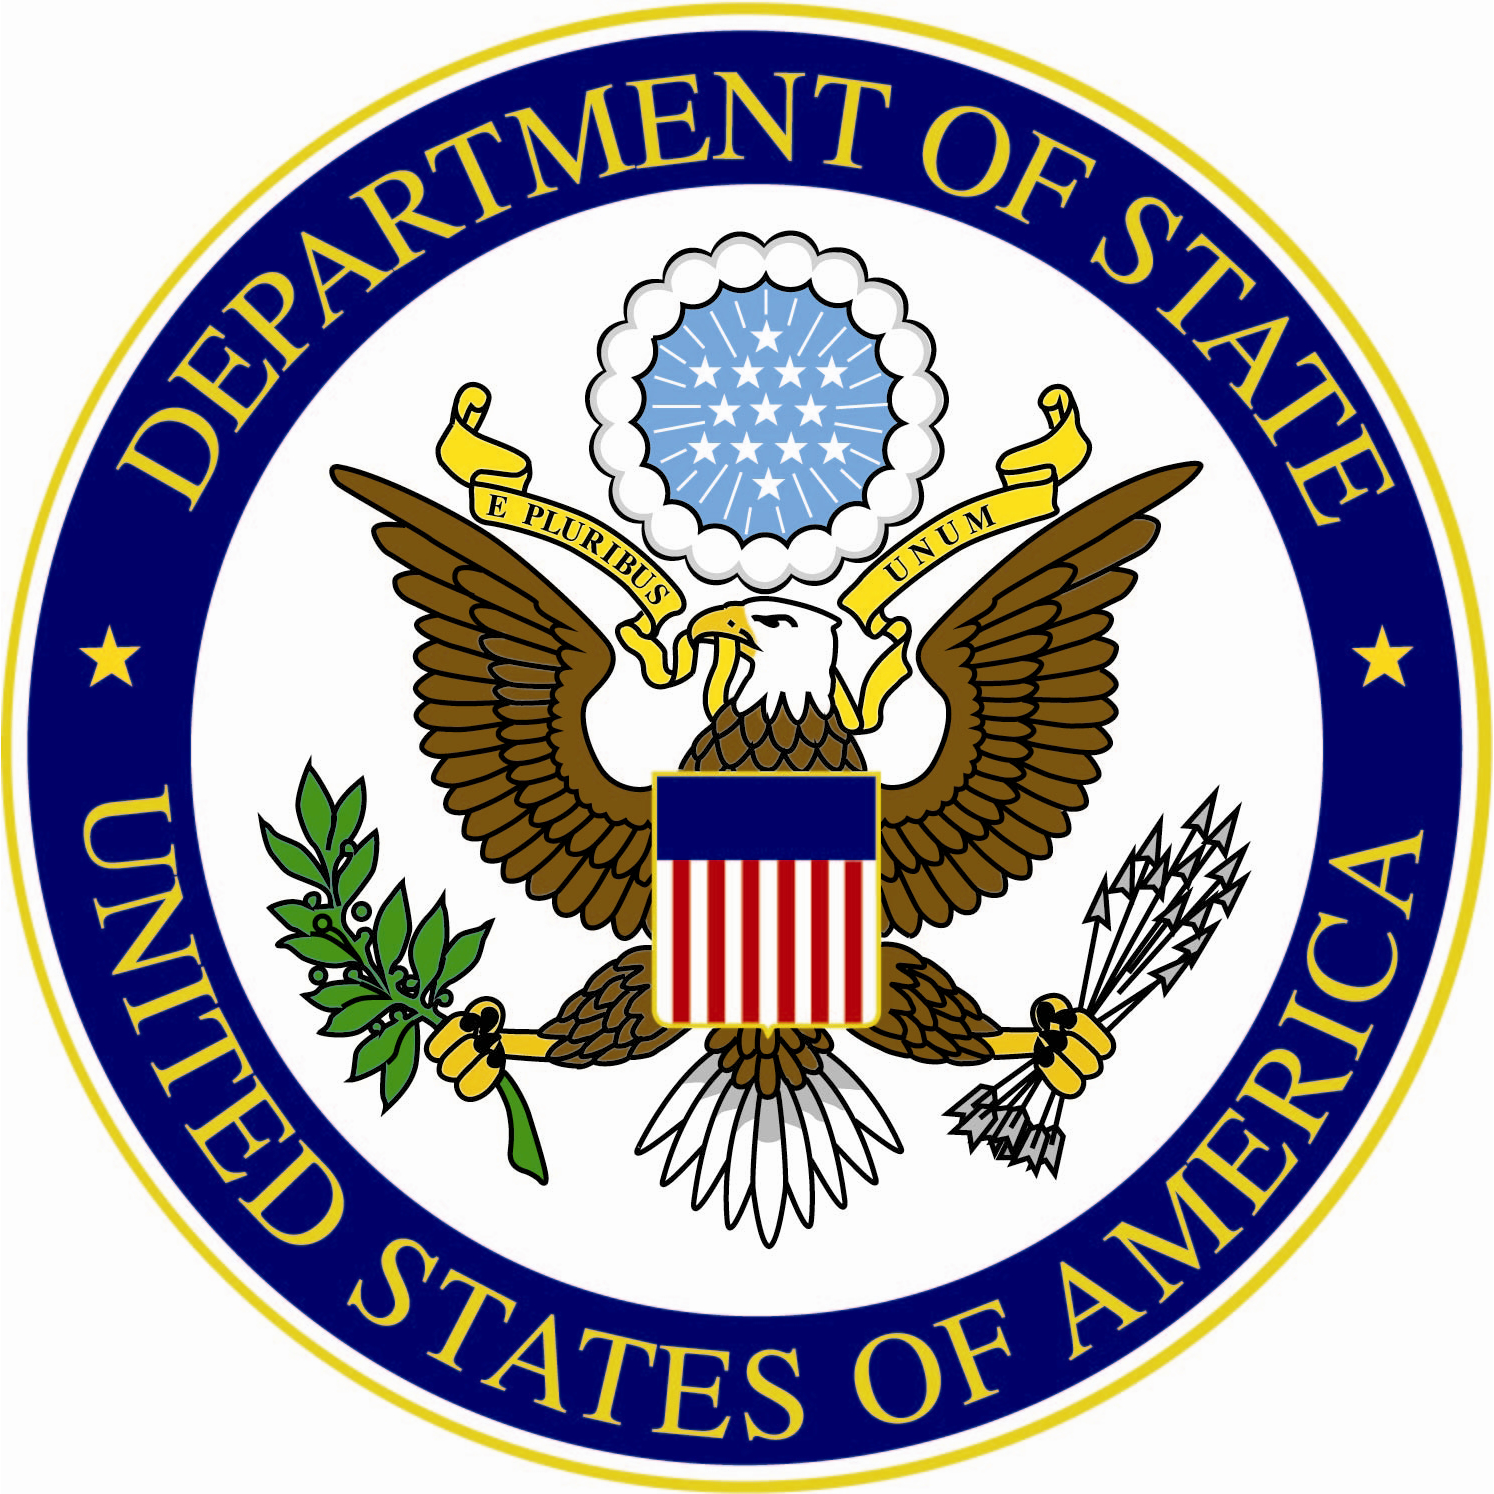 Embassy of the United States - Accra - Ghana